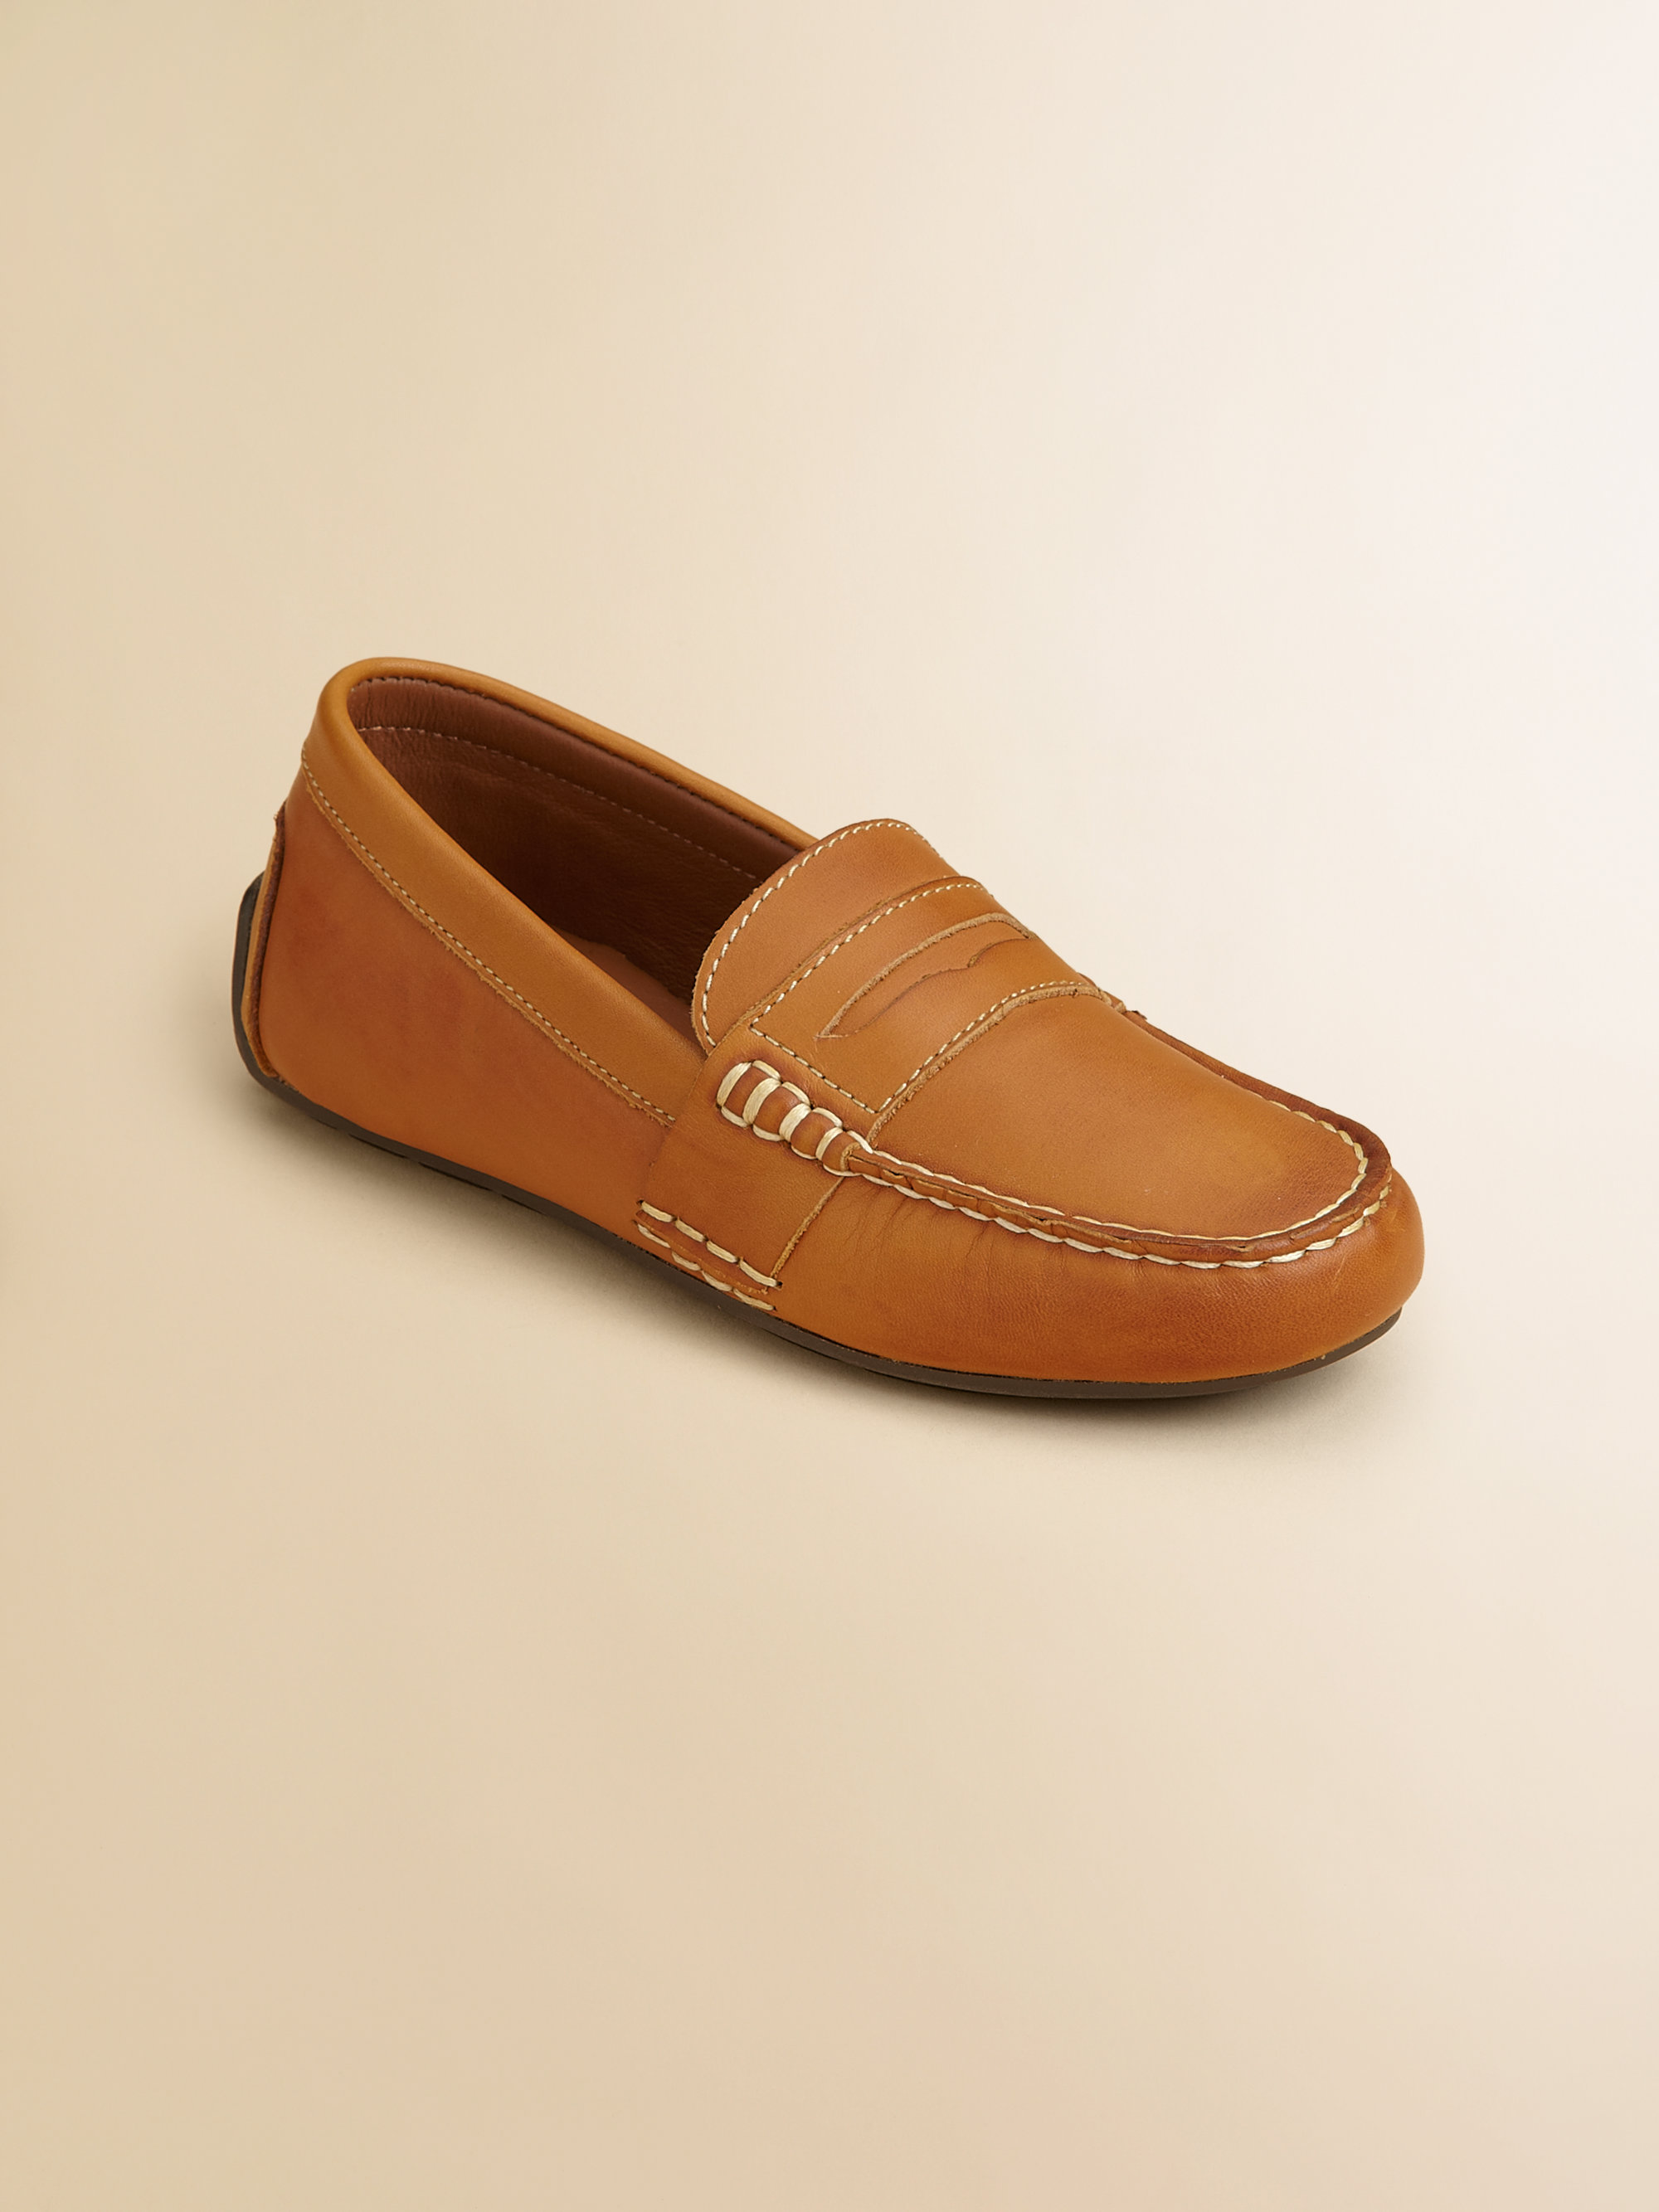 Penny Loafer Shoes For Women